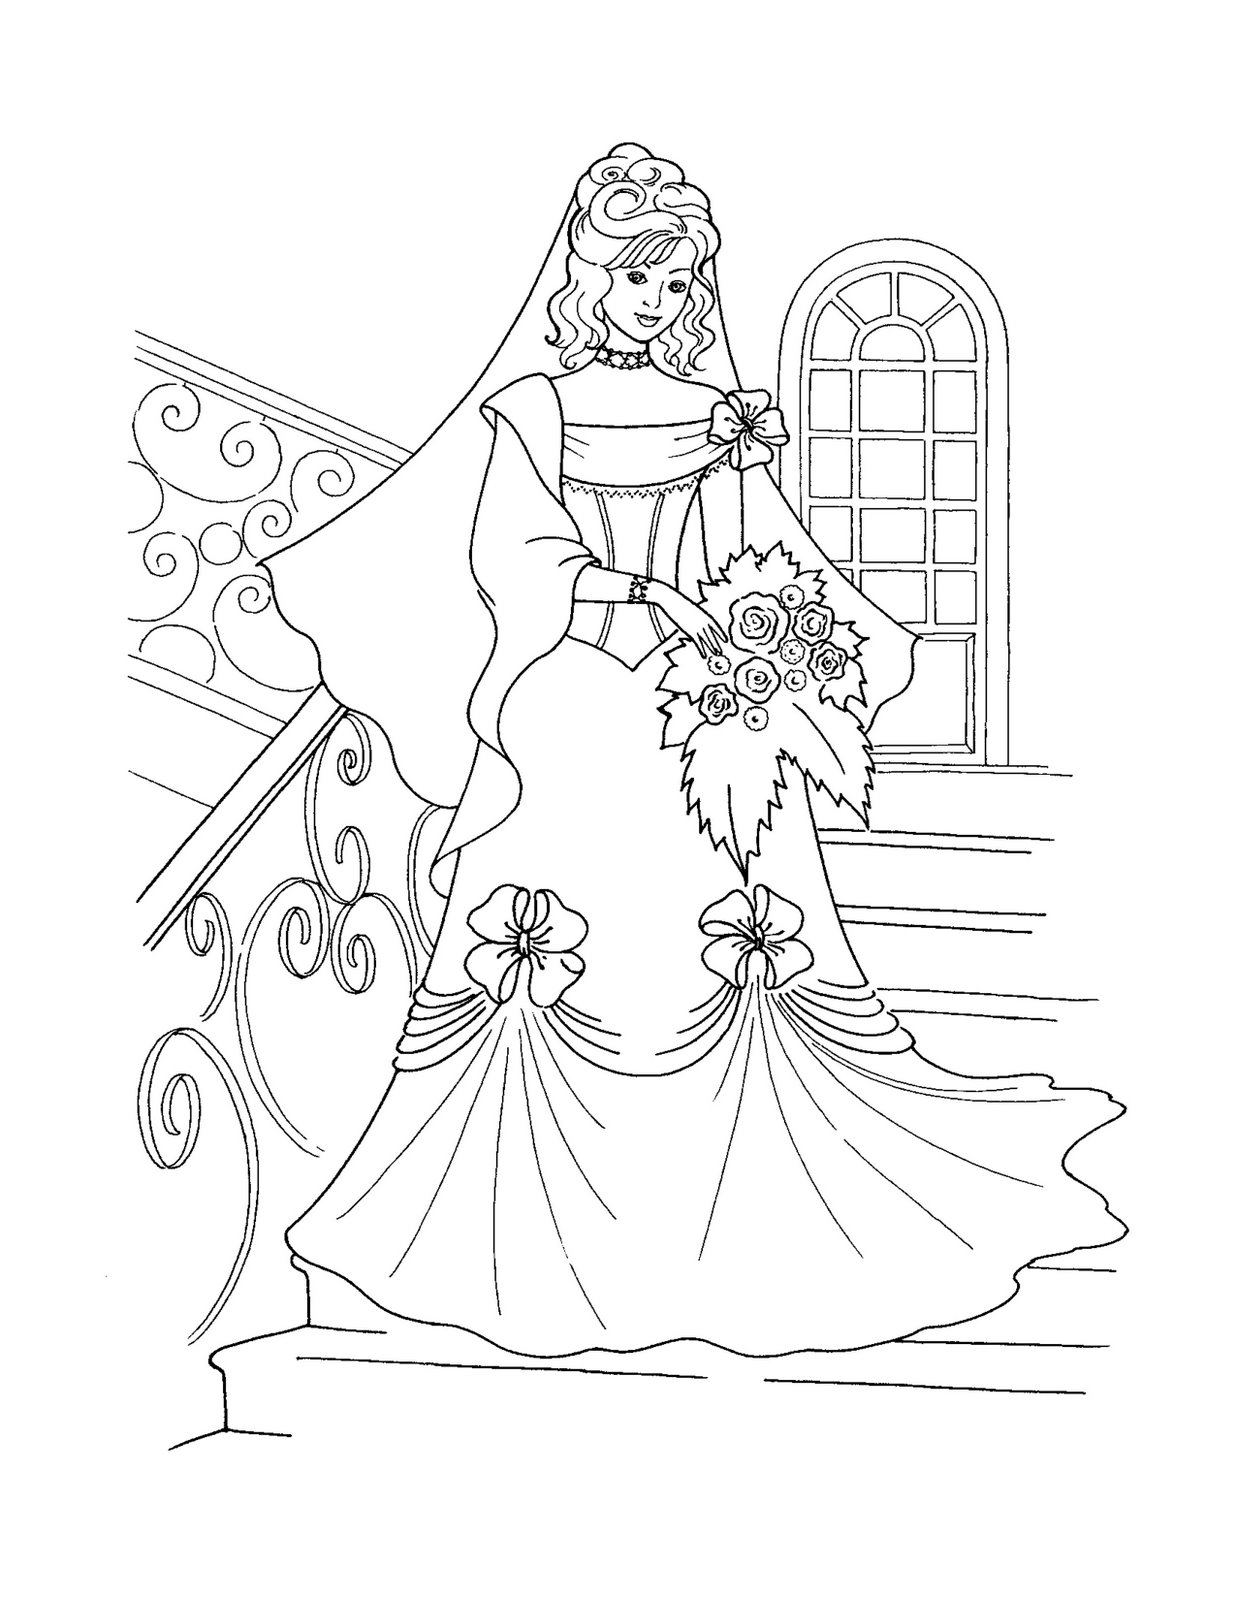 disney princess castle coloring pages - Disney Princess Coloring Pages To Print For Free